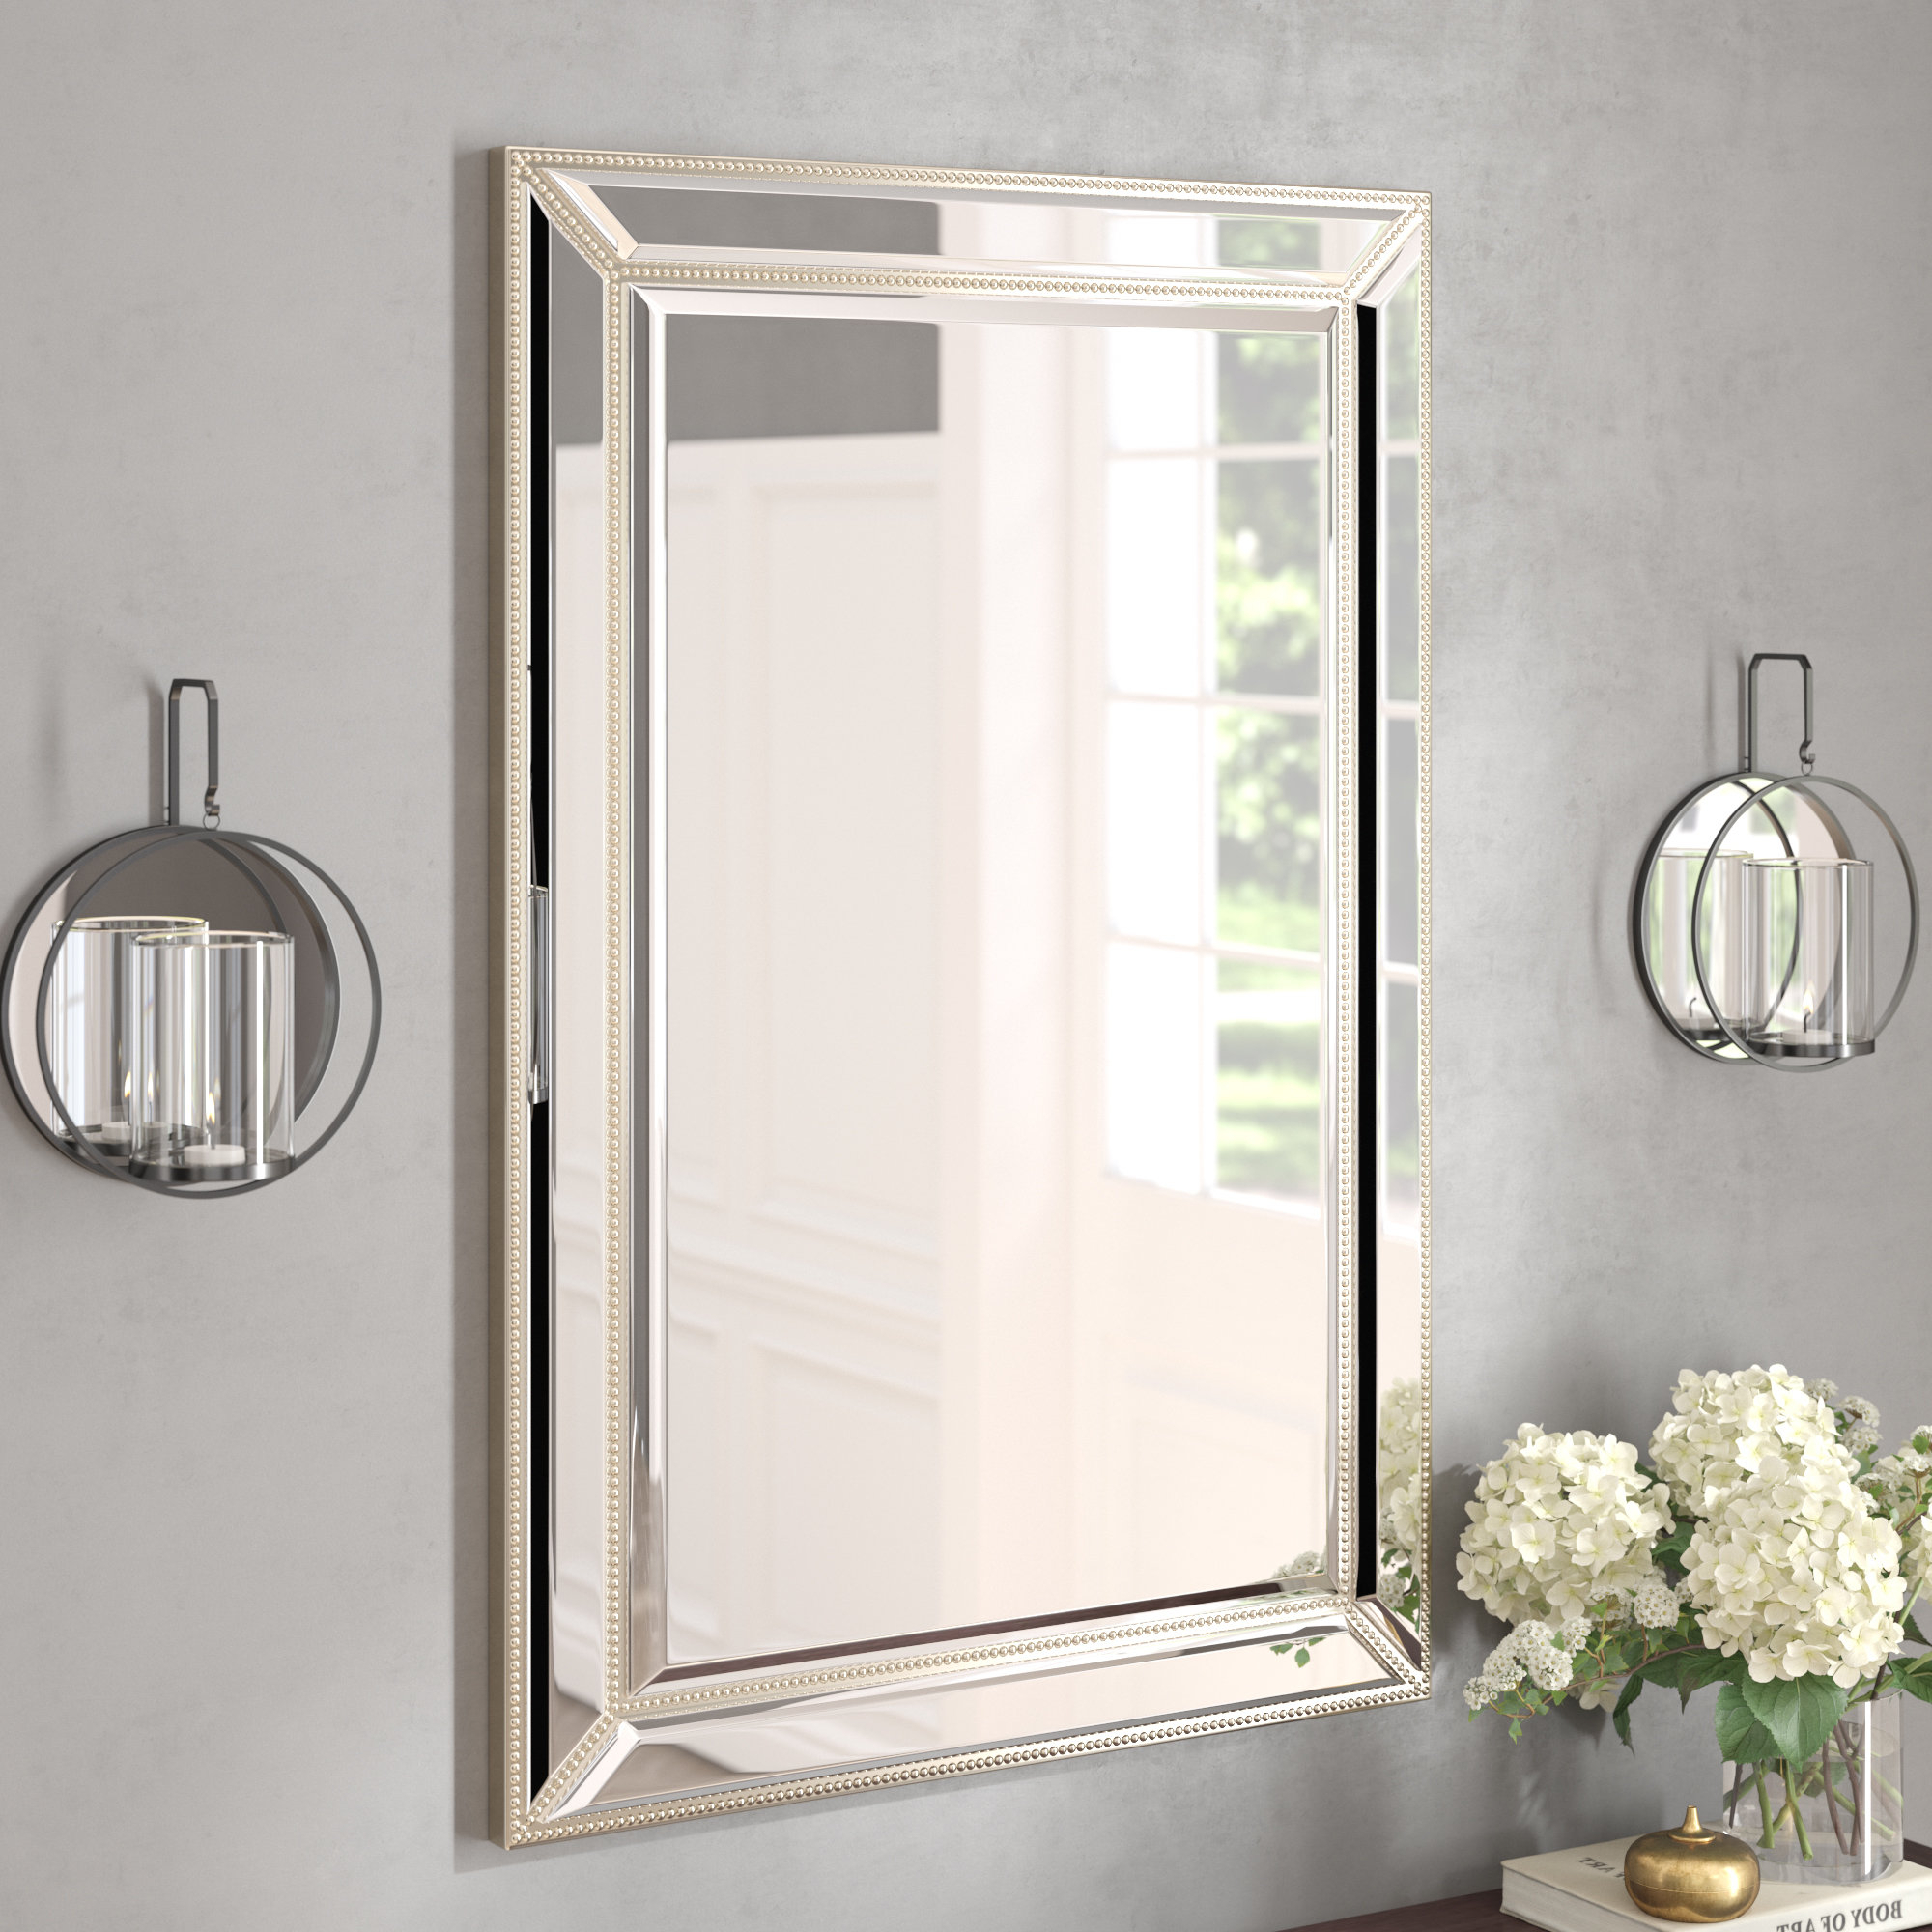 Ansgar Accent Mirrors Intended For Recent Darby Home Co Tutuala Traditional Beveled Accent Mirror & Reviews (Gallery 8 of 20)